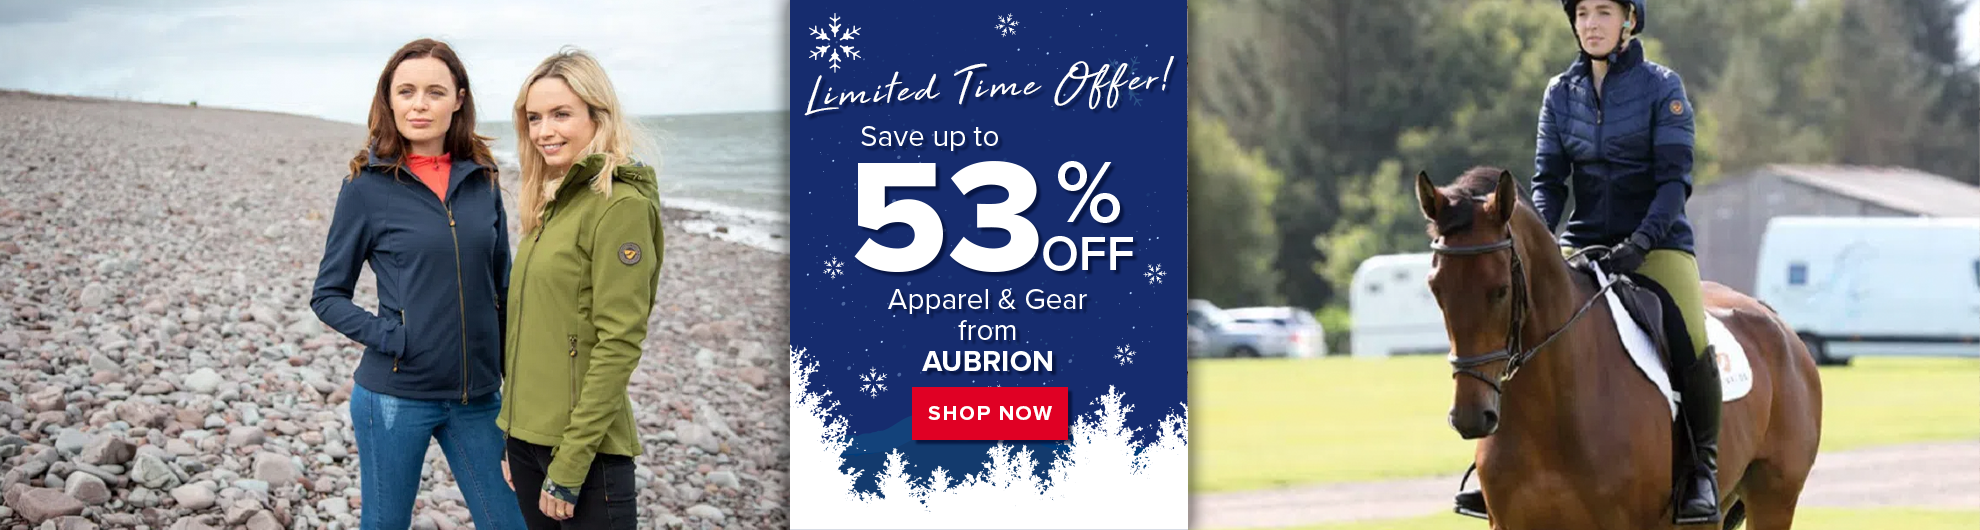 Aubrion Equestrian Apparel